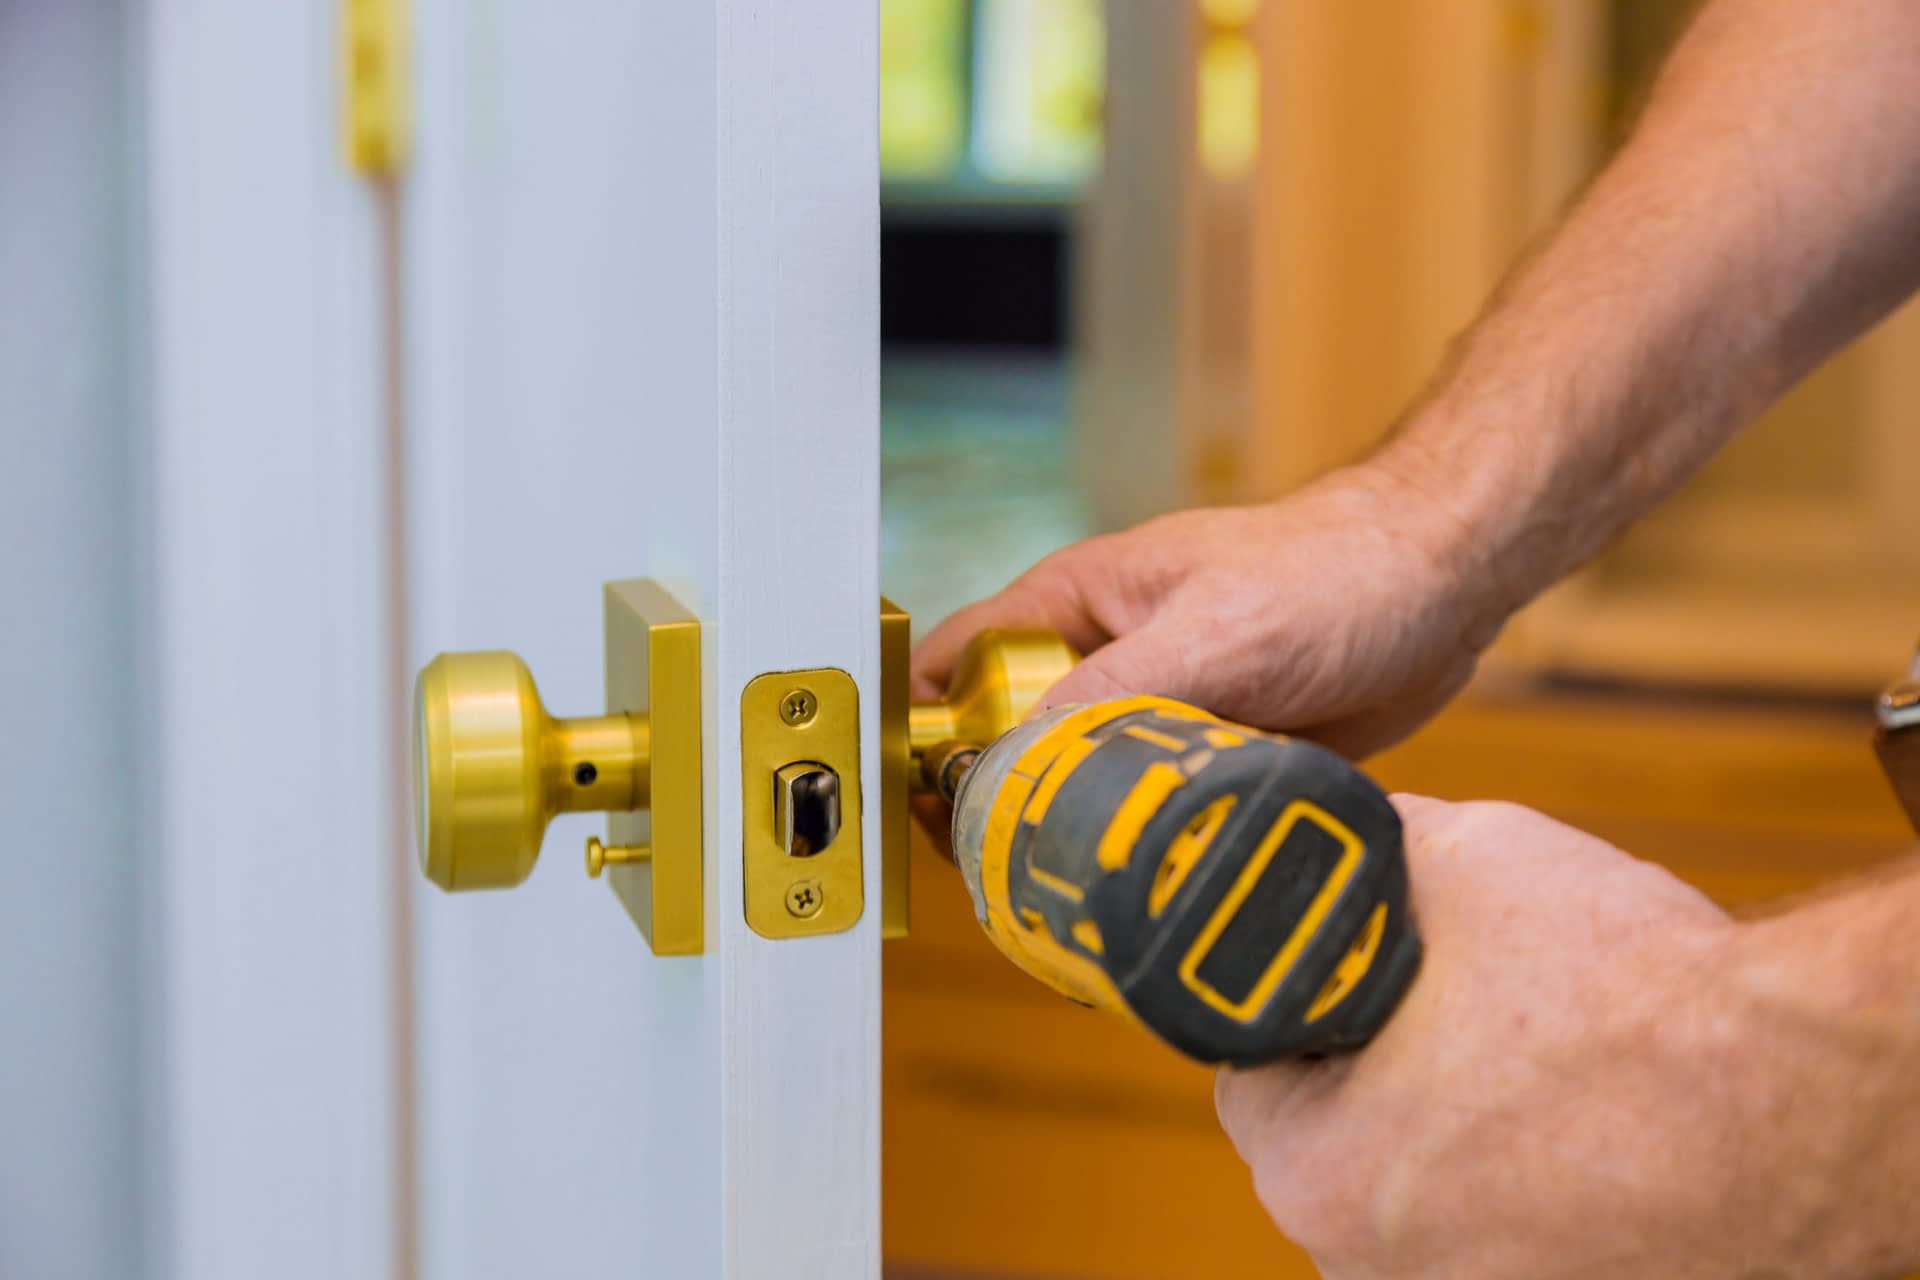 24/7 Locksmith Services | Why Would You Need Locksmith Services